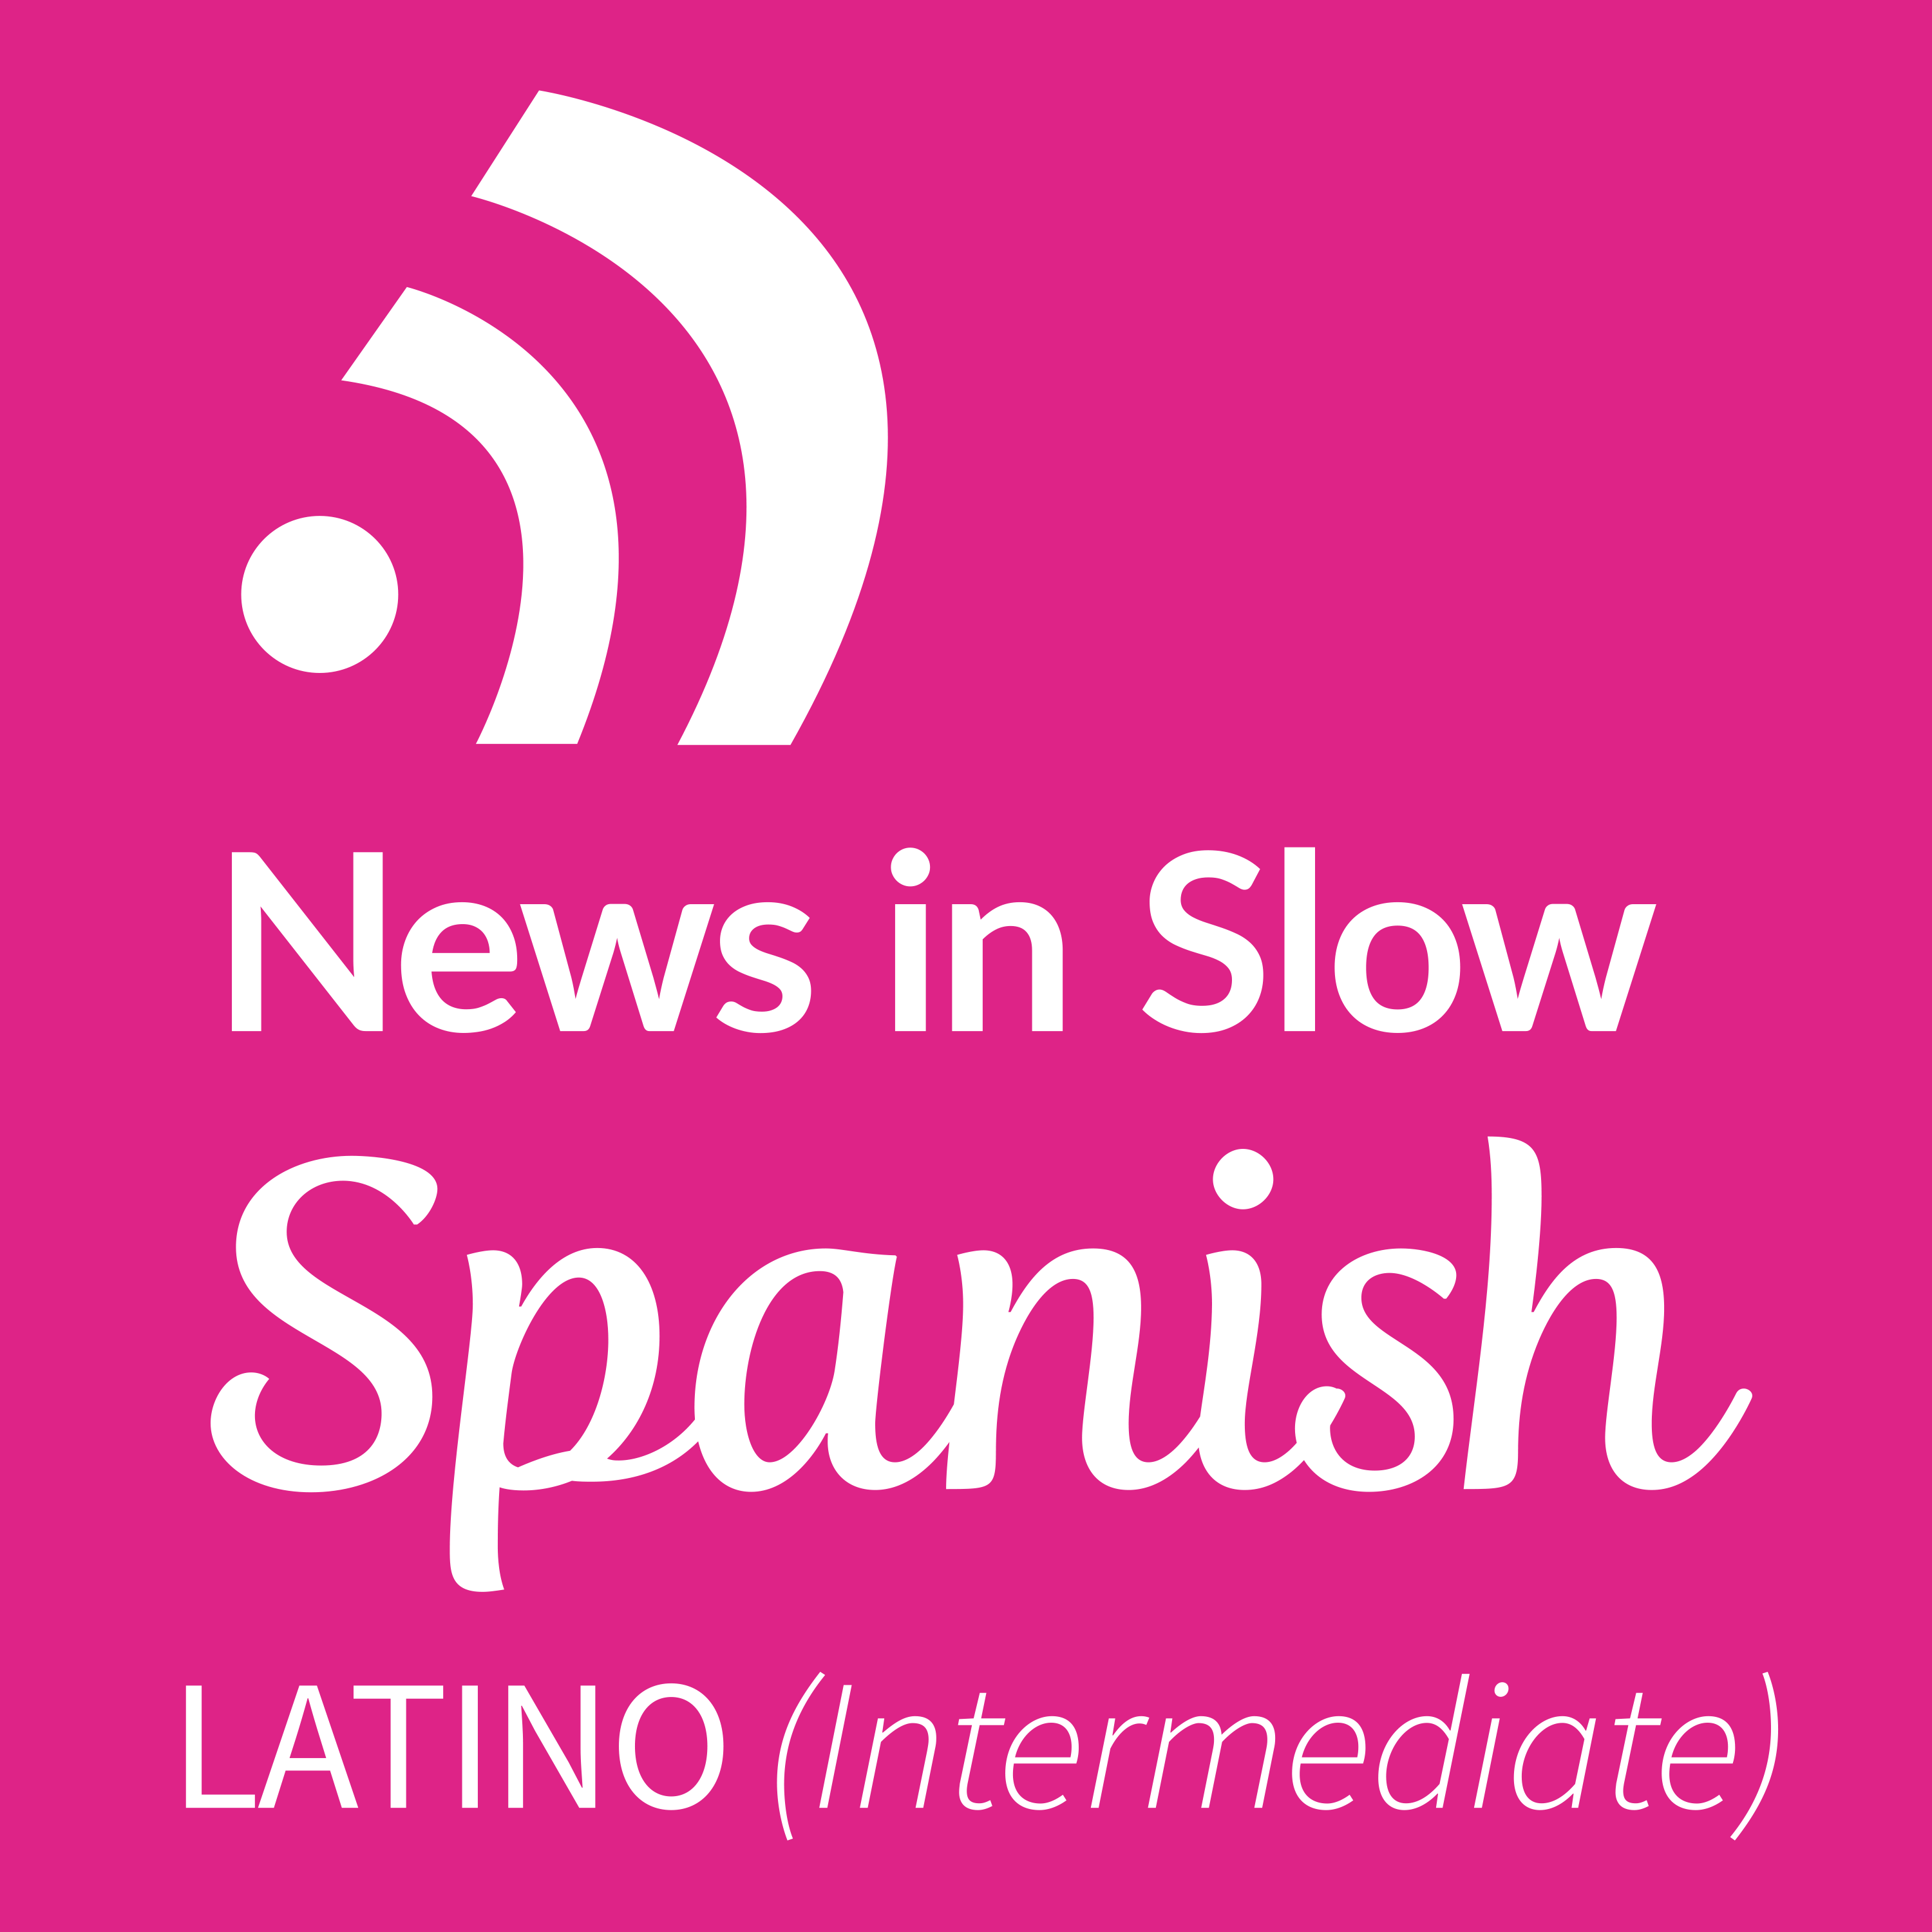 News in Slow Spanish Latino - # 140 - Spanish grammar, news and expressions